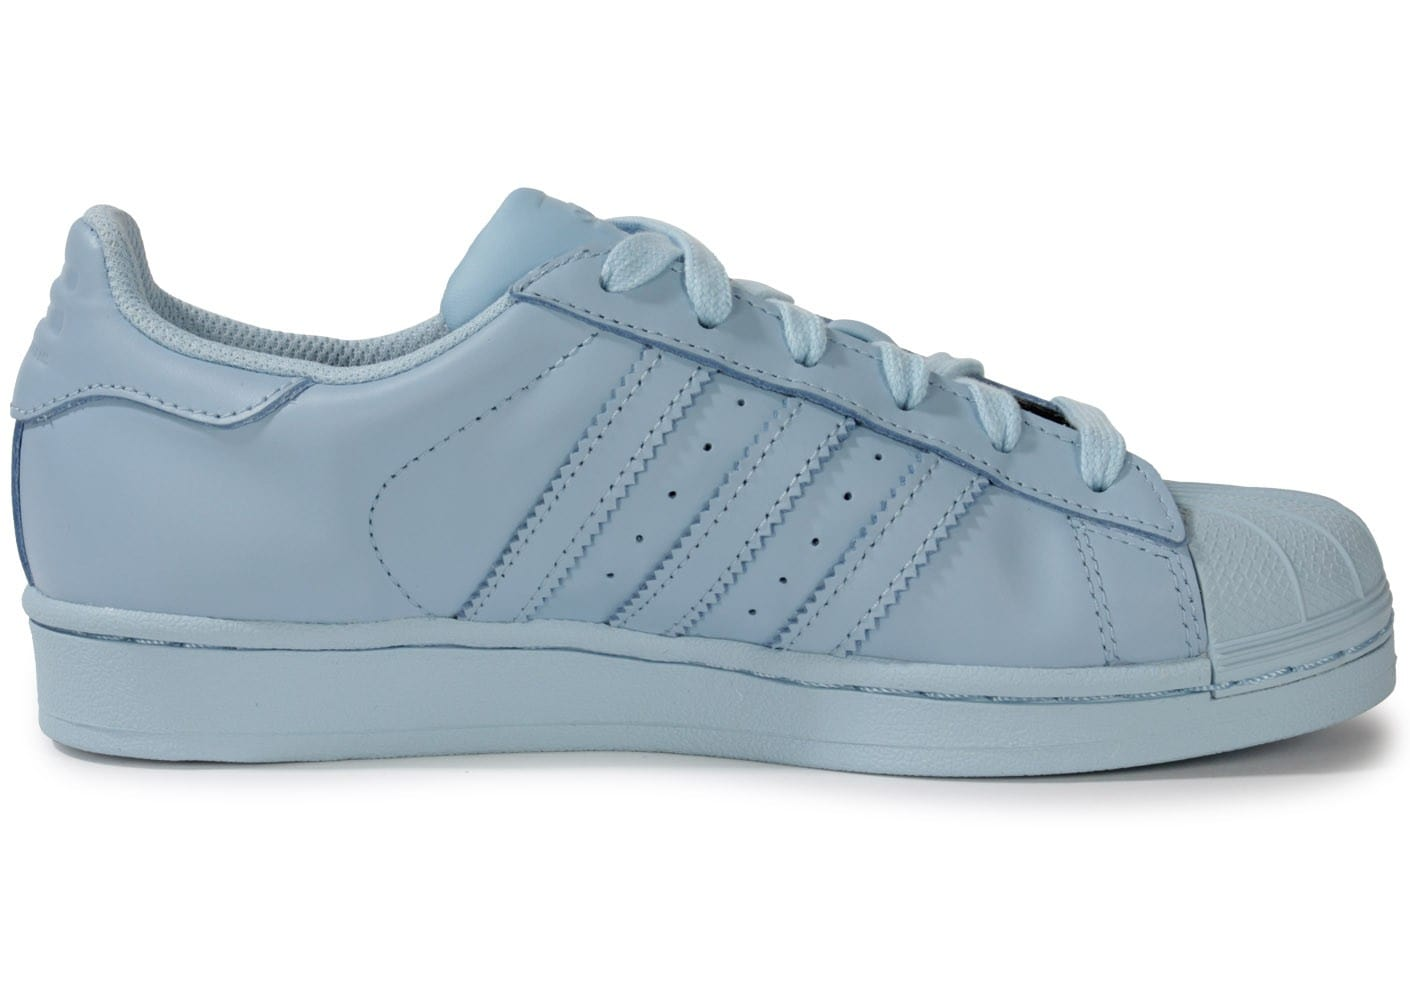 adidas chaussures adidas superstar femme coloris bleu clair. Black Bedroom Furniture Sets. Home Design Ideas